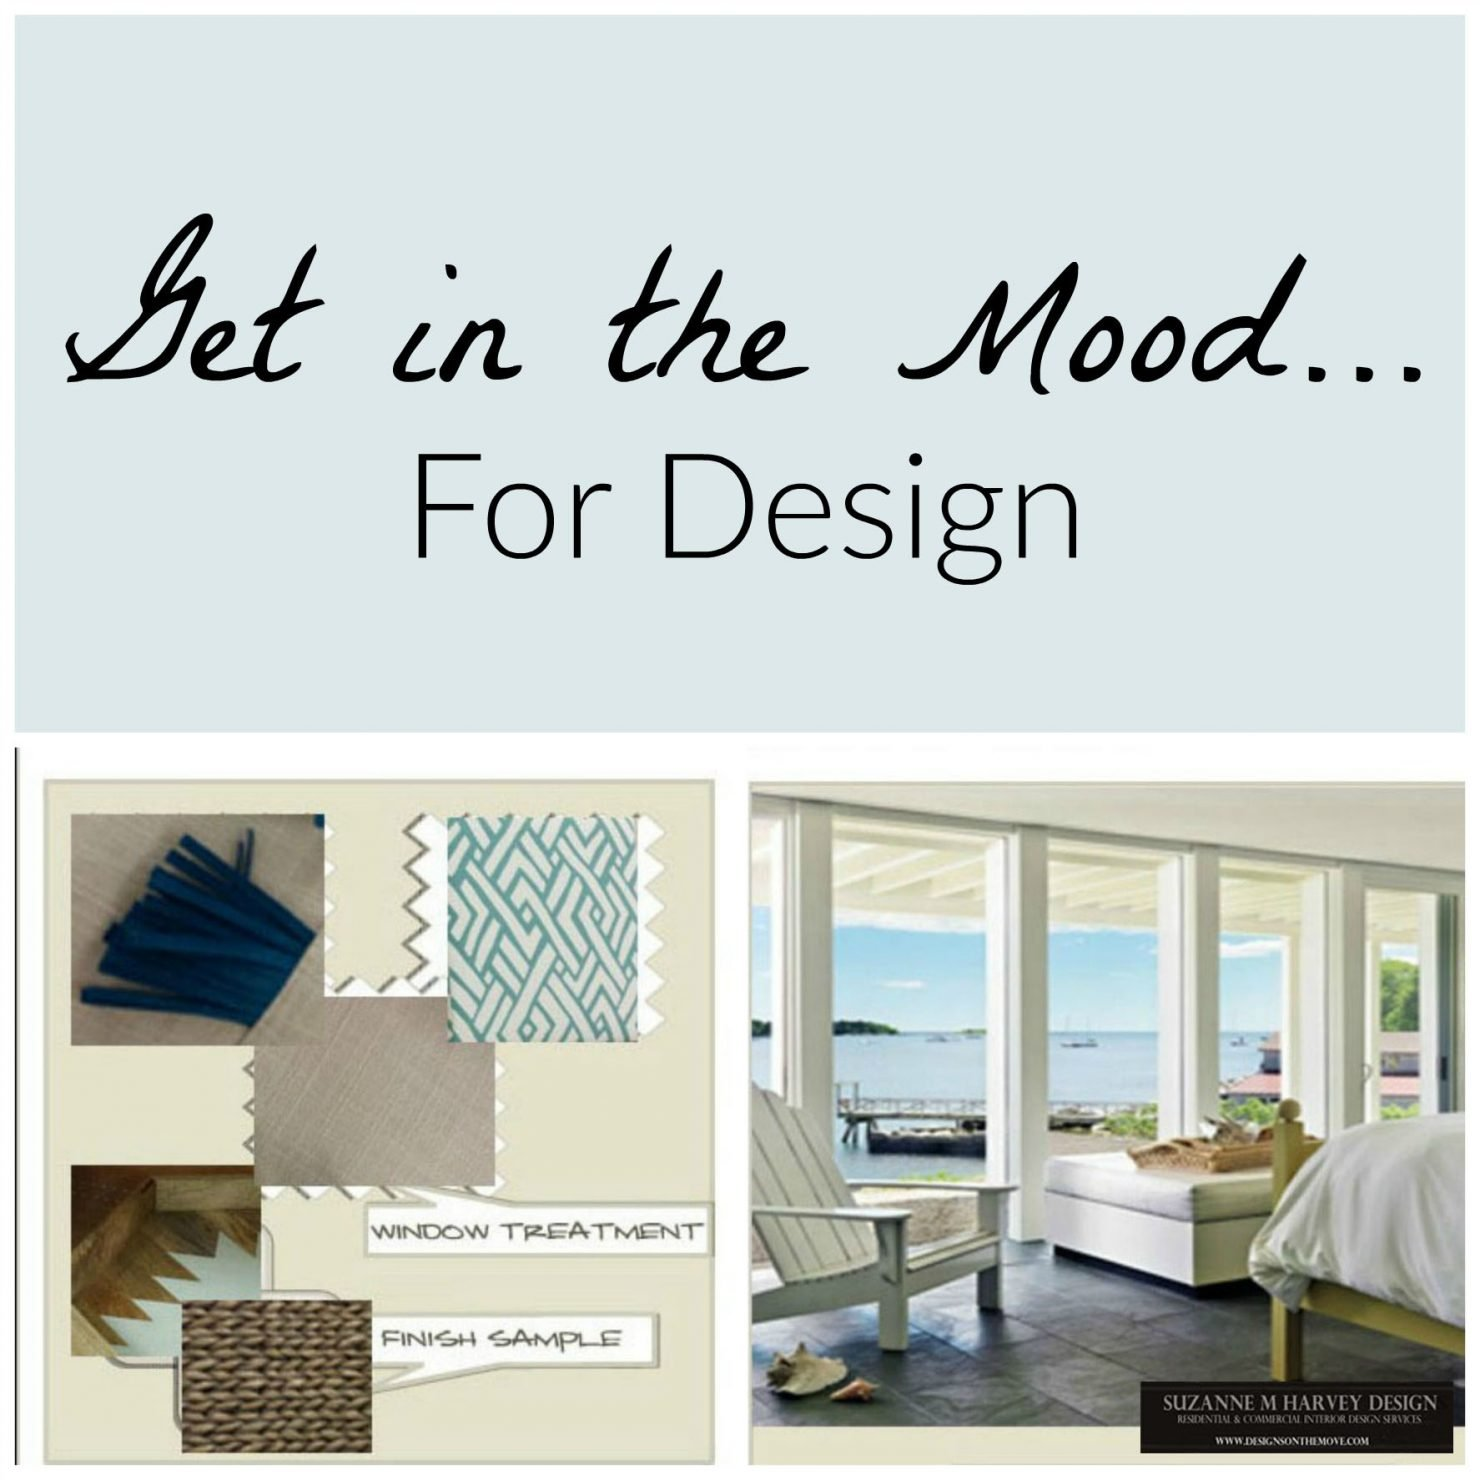 Get in the mood...for design